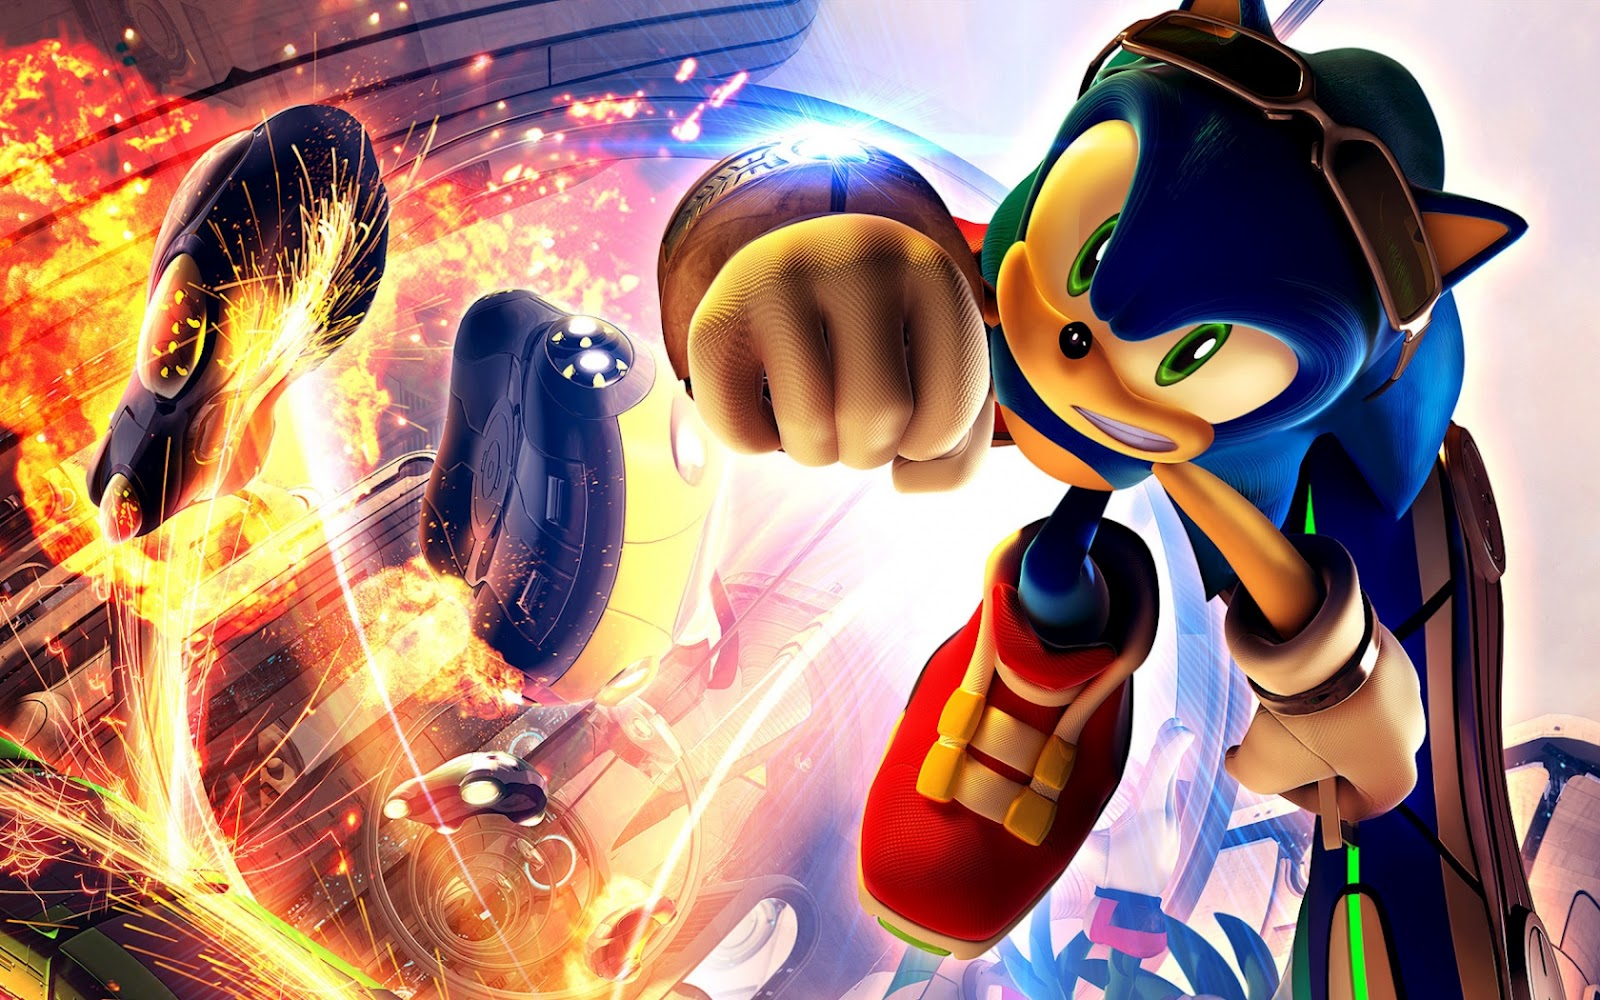 Geek_Magazine_Sonic-the Hedgehog